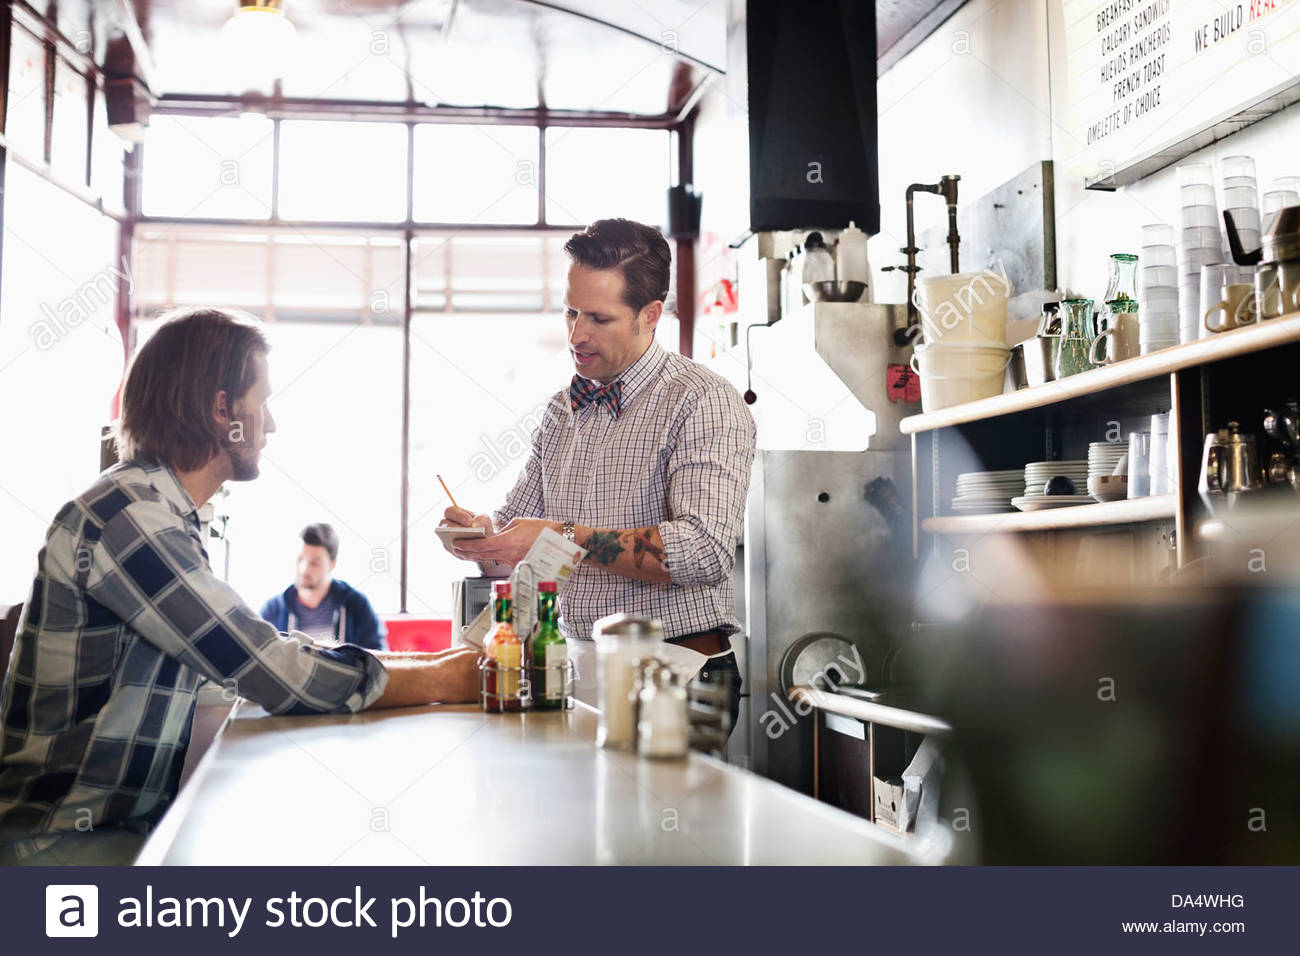 Male business owner taking customer's order at diner counter - Stock Image